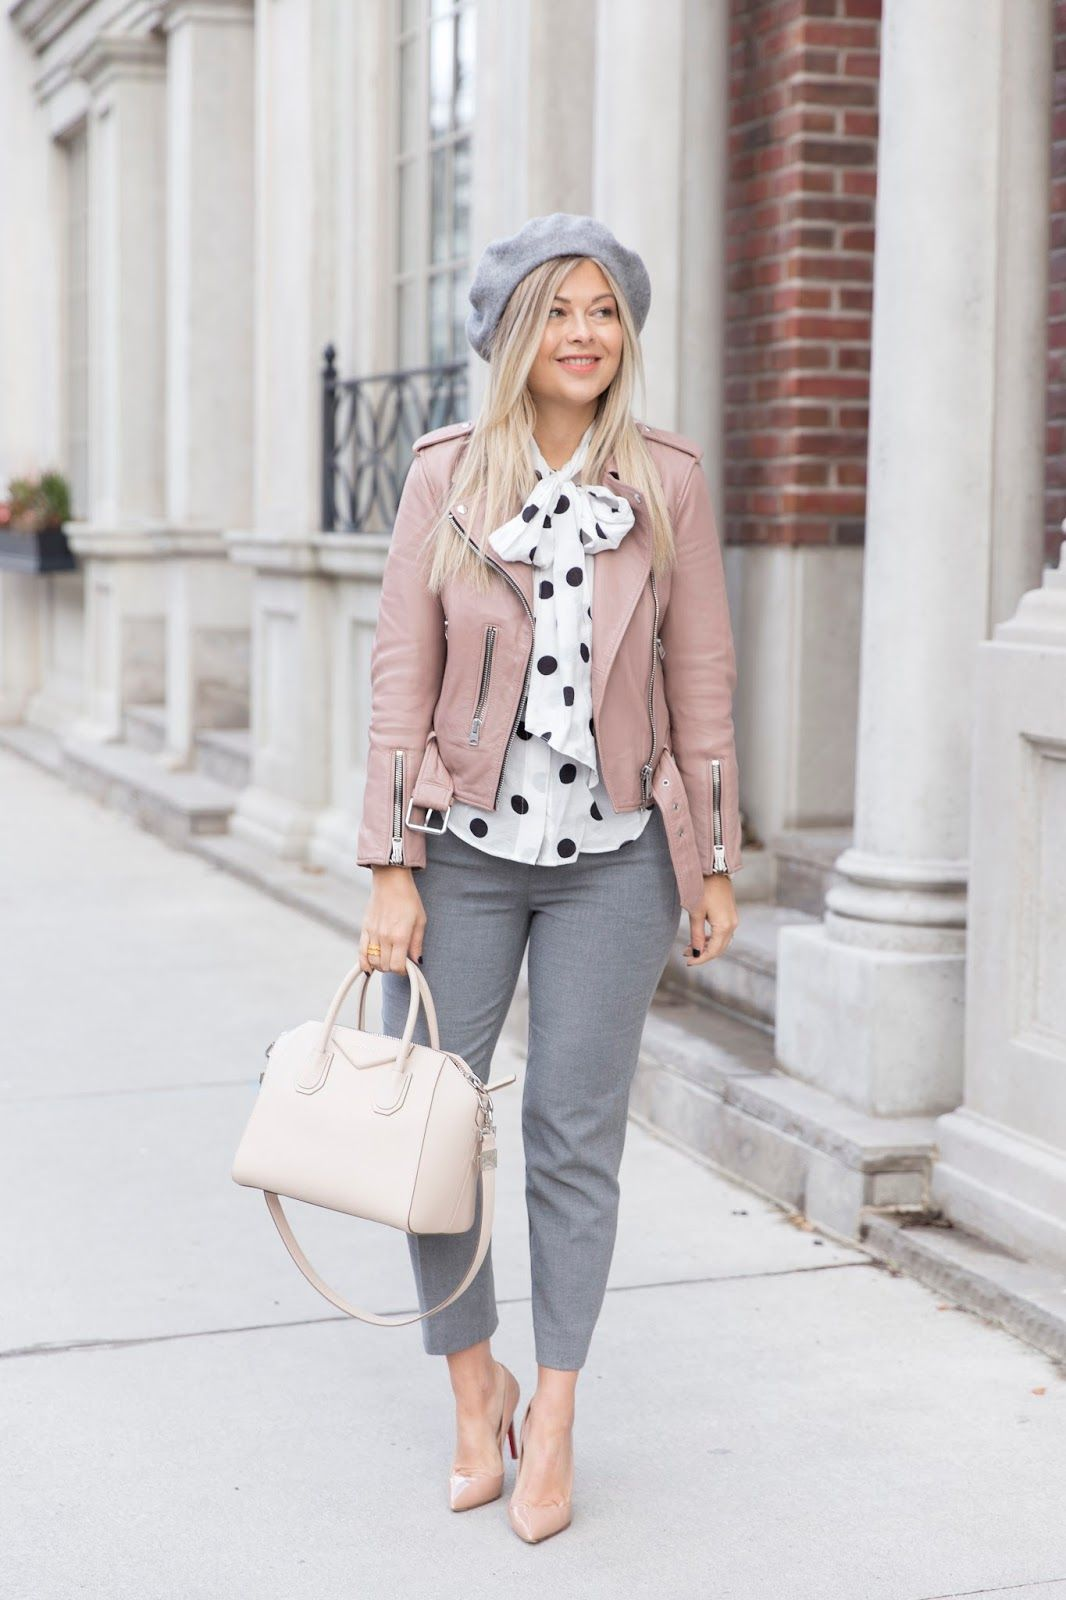 Autumn / fall / spring outfit dressing - blush pink and grey with